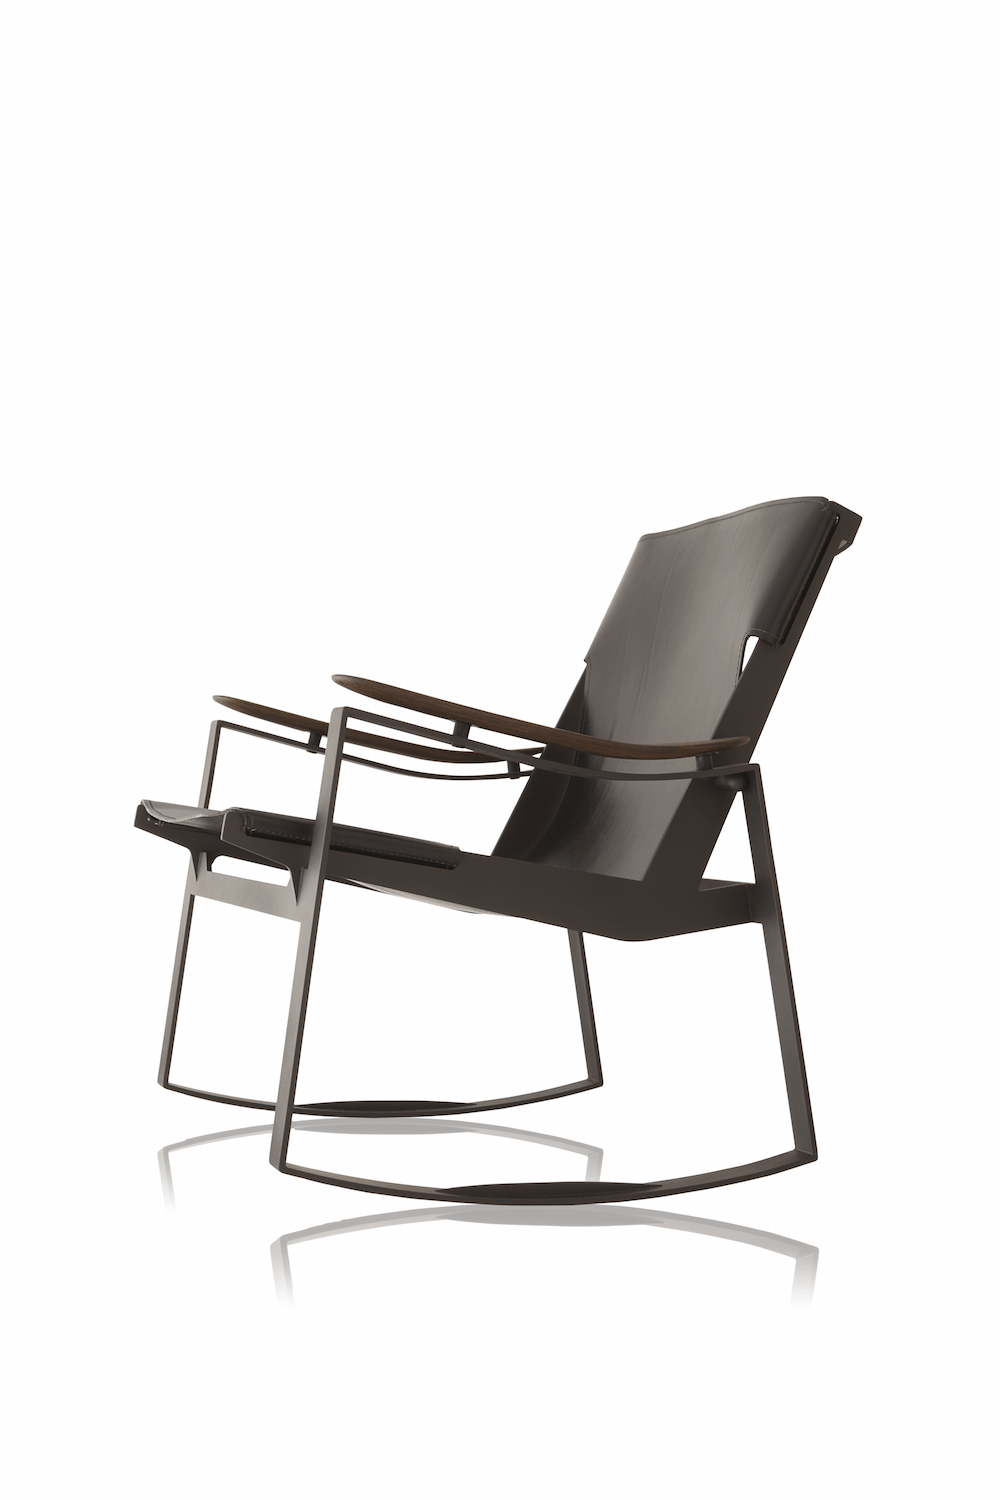 Licce lounge rocking armchair by Jader Almeida - Kelly Christian Designs